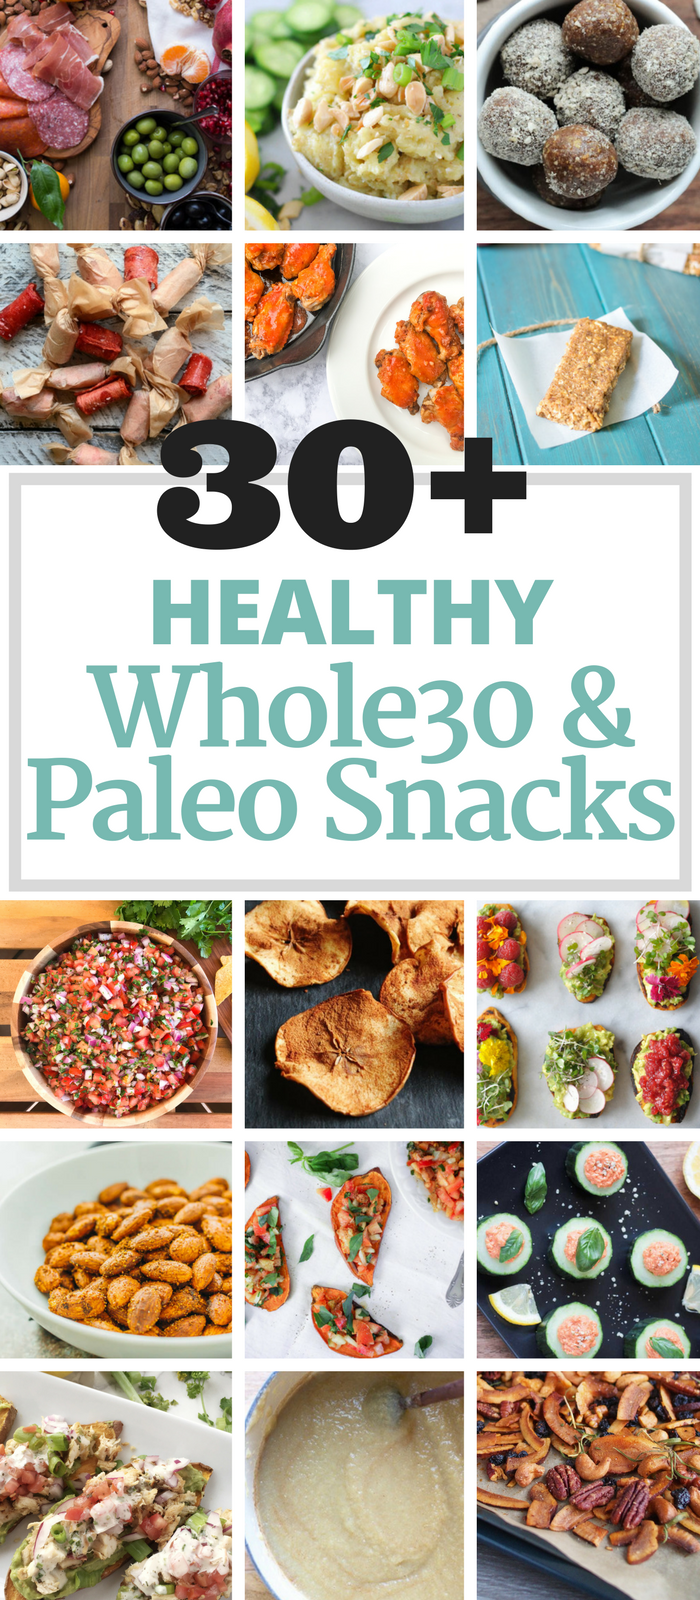 30+ Healthy Whole30 & Paleo Snacks via The Whole Cook